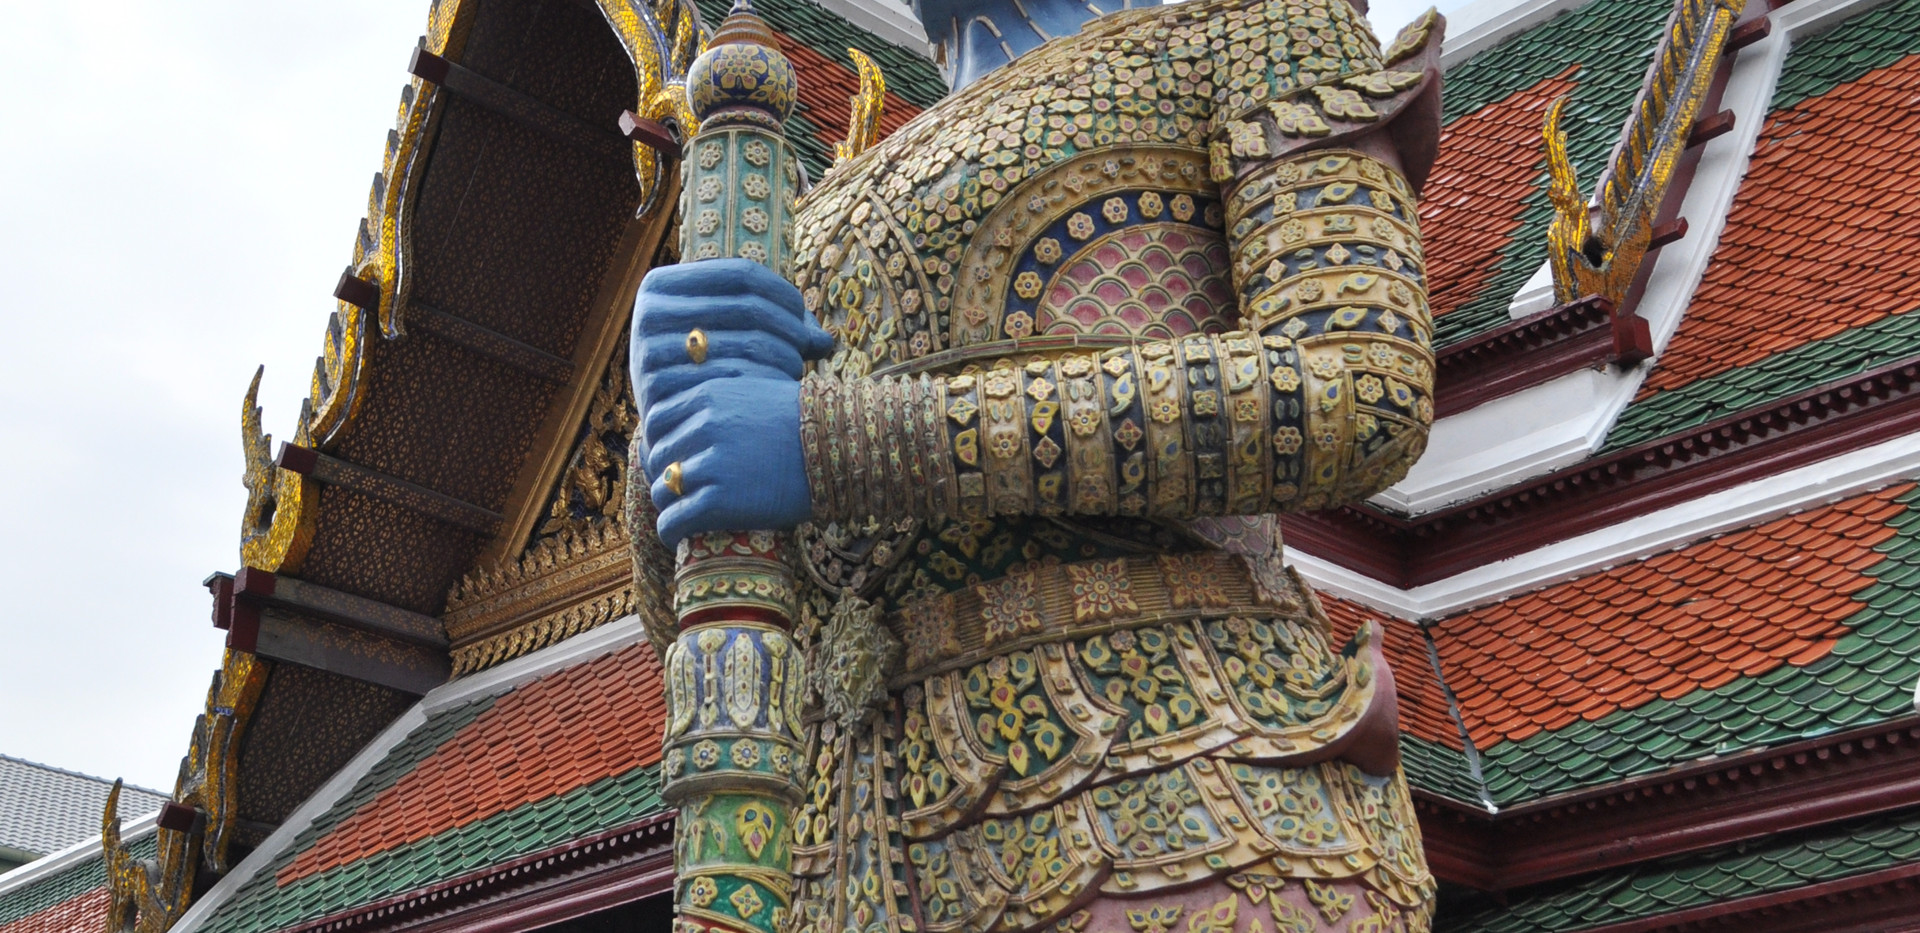 Figur ved Grand Palace